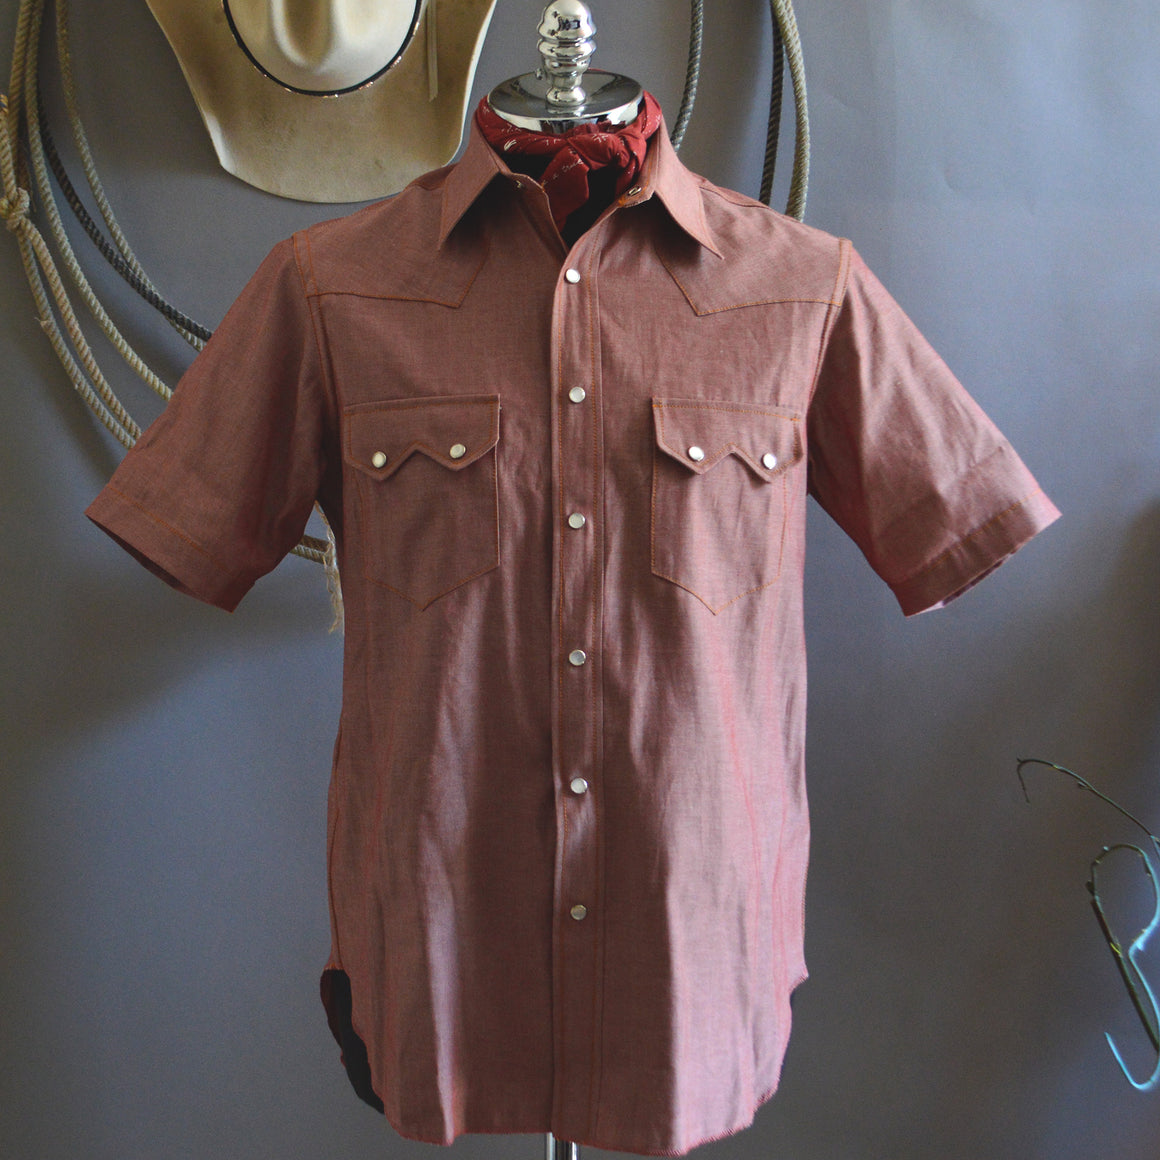 Highwayman- Men's Short Sleeve Chambray Shirt